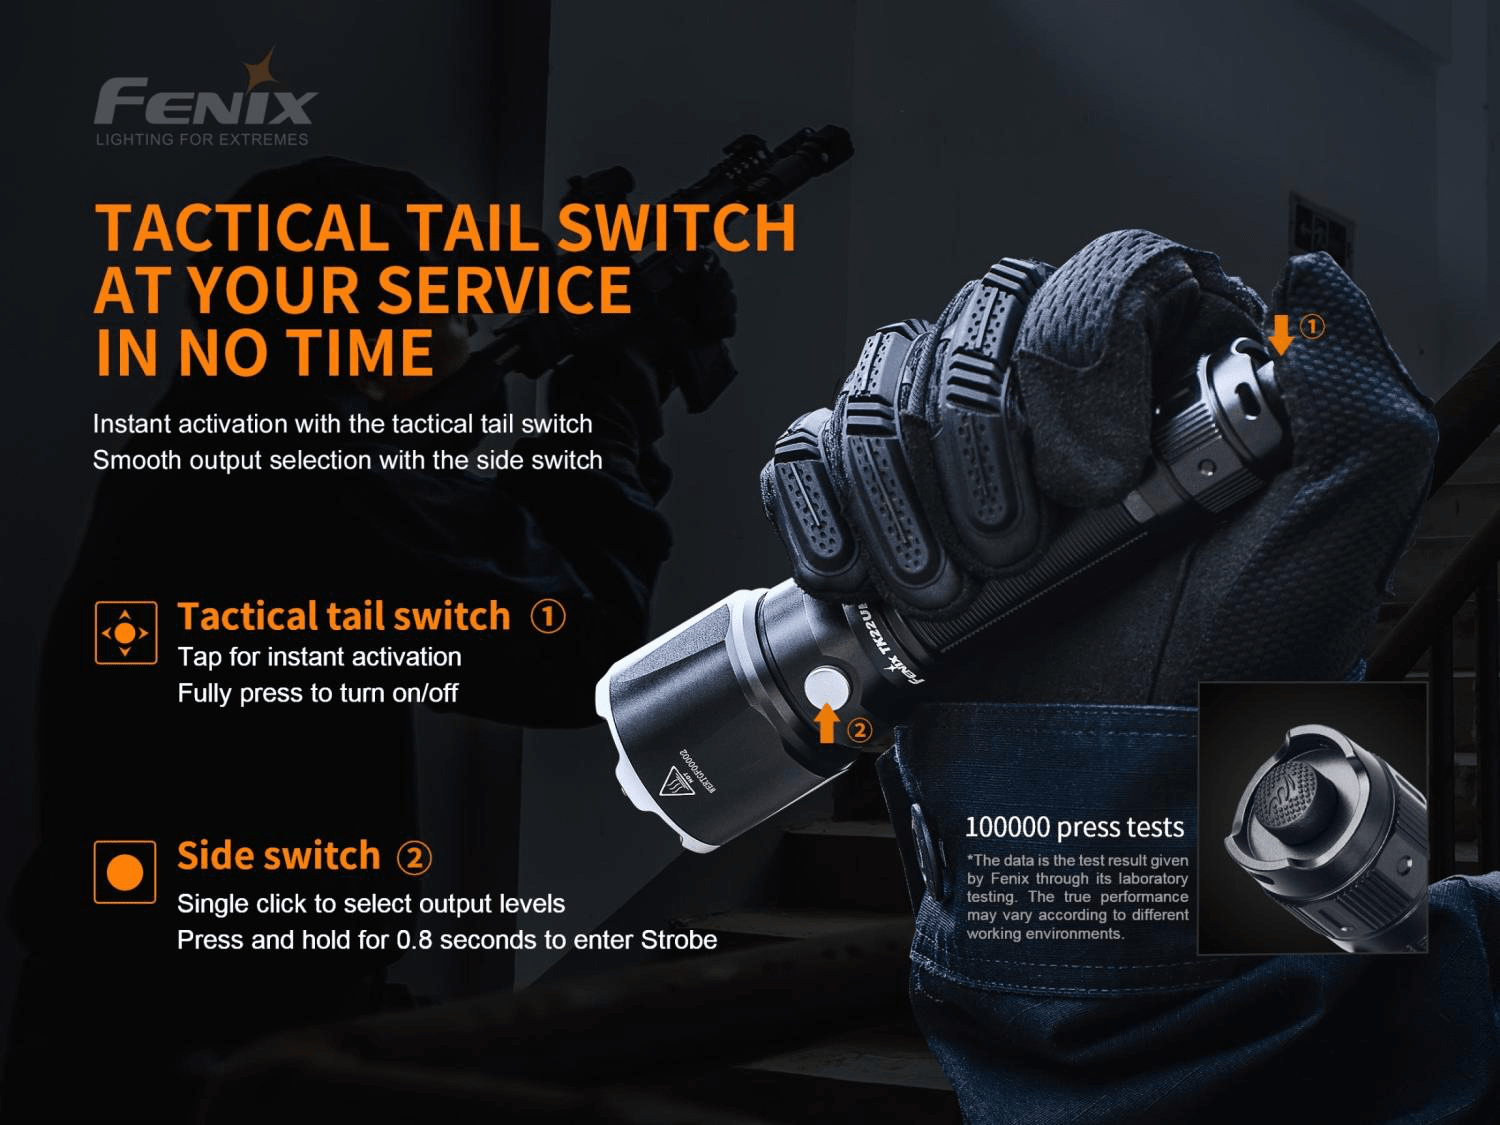 Fenix TK22 Ultimate Edition, 1600 Lumens powerful rechargeable tactical LED torch in India, Torch light for policing, law enforcement and outdoors